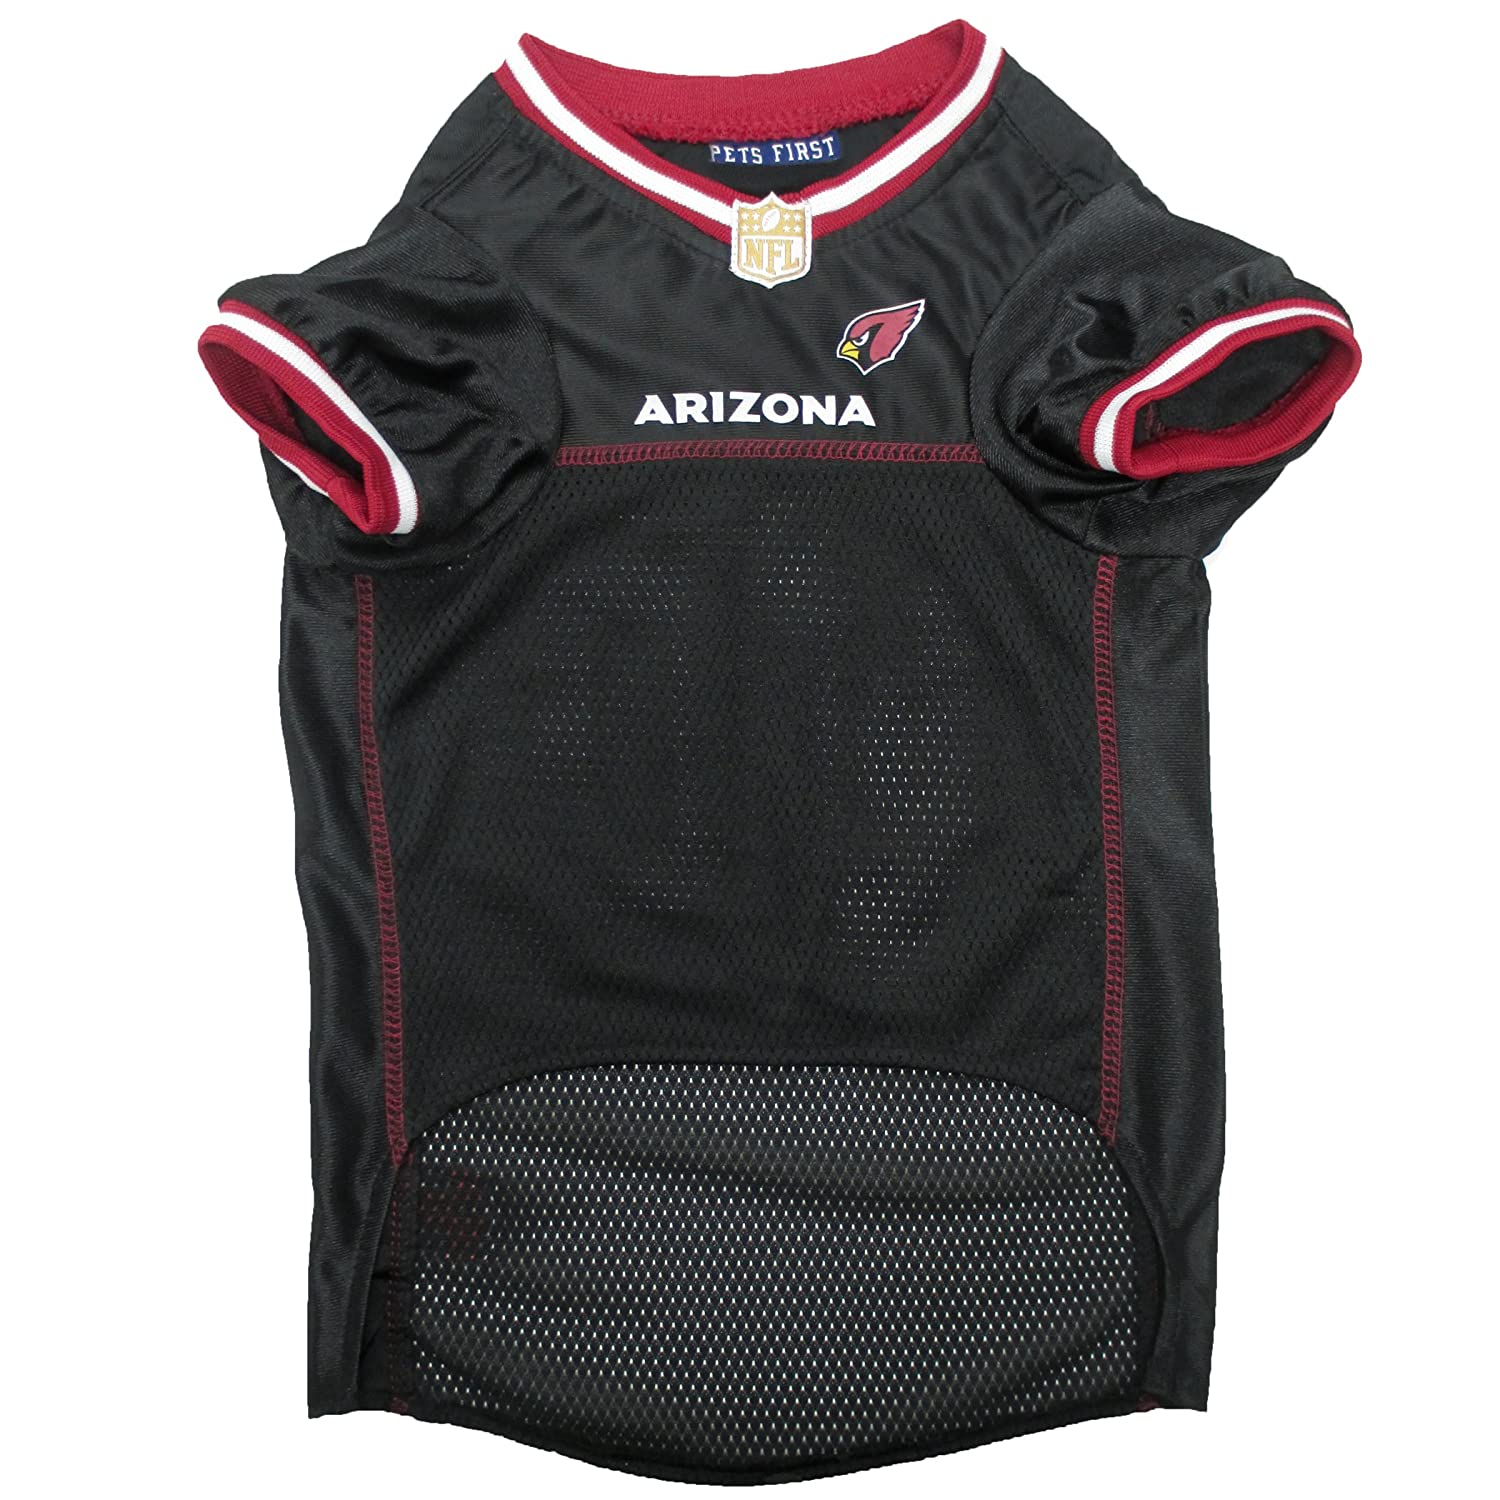 7278d8aab Football Licensed Dog Jersey. - 32 NFL Teams Available. - Comes in 6 Sizes.  - Football Pet Jersey. - Sports Mesh Jersey. - Dog Jersey Outfit.